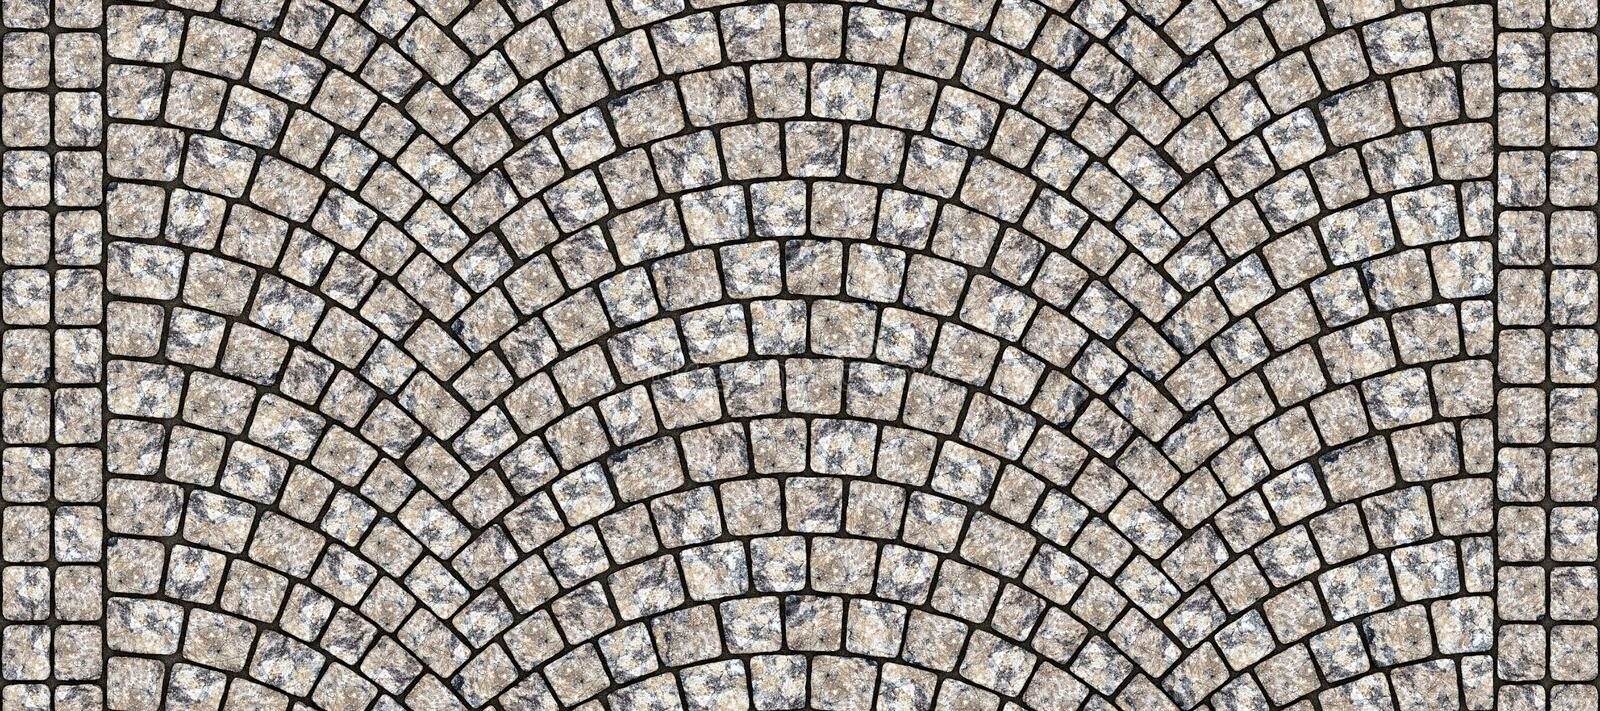 Road curved cobblestone texture 109. Cobblestone arched pavement road with edge courses at the sidewalk. Seamless tileable repeating 3D rendering texture vector illustration